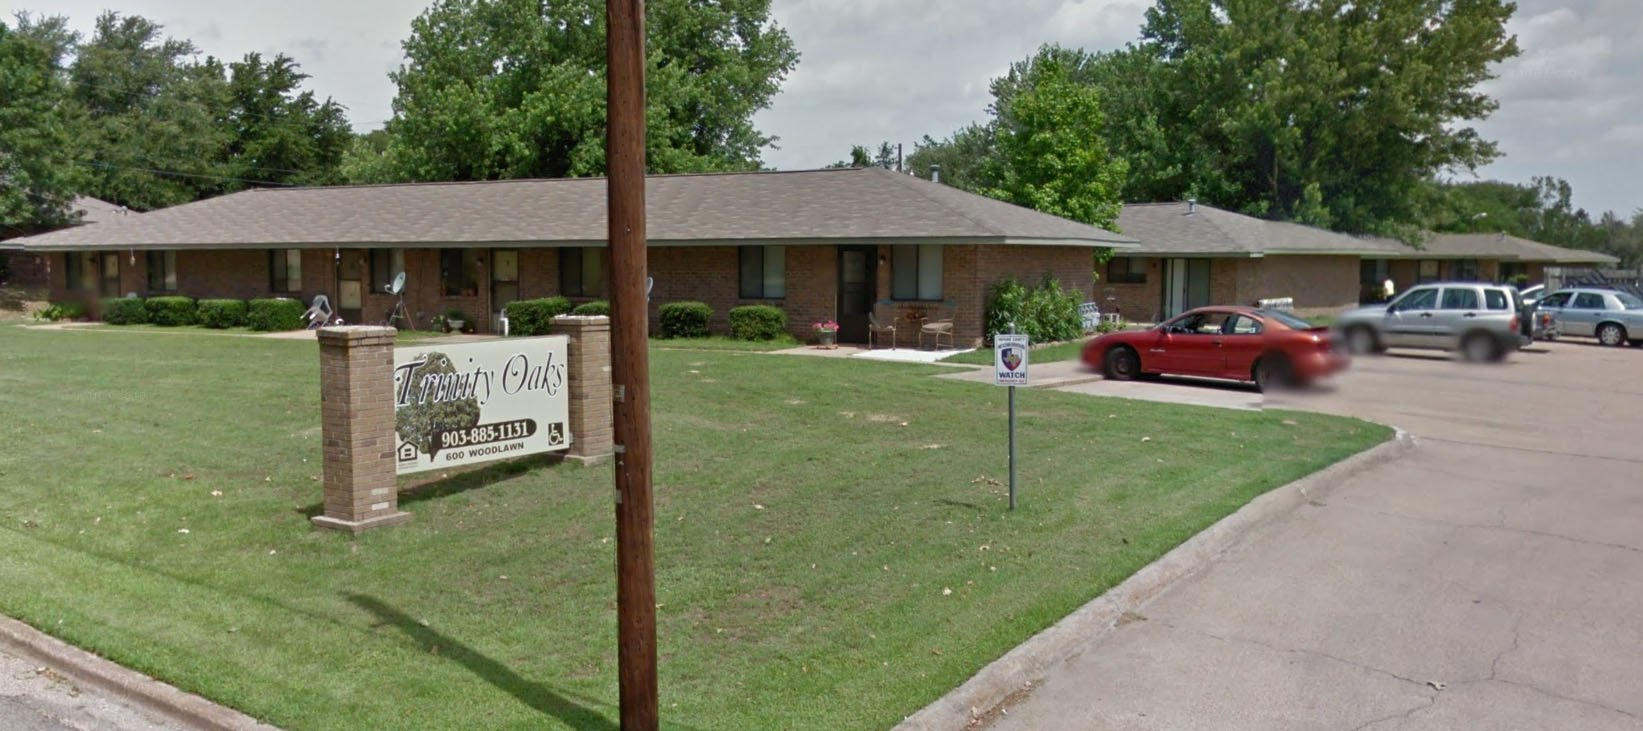 Trinity Oaks Apartments